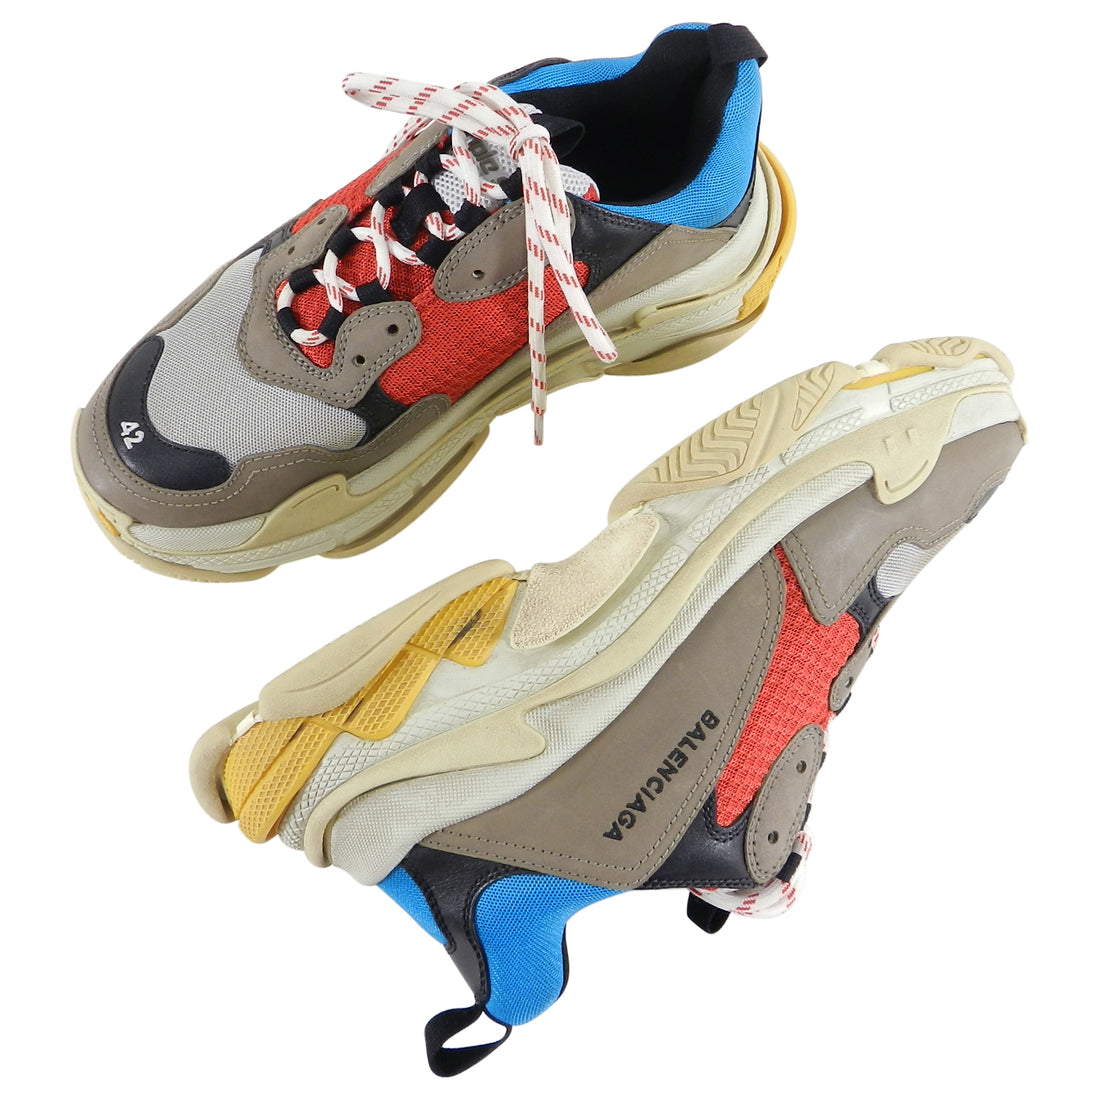 Balenciaga Triple S Trainers - Red, Blue, Grey - 9